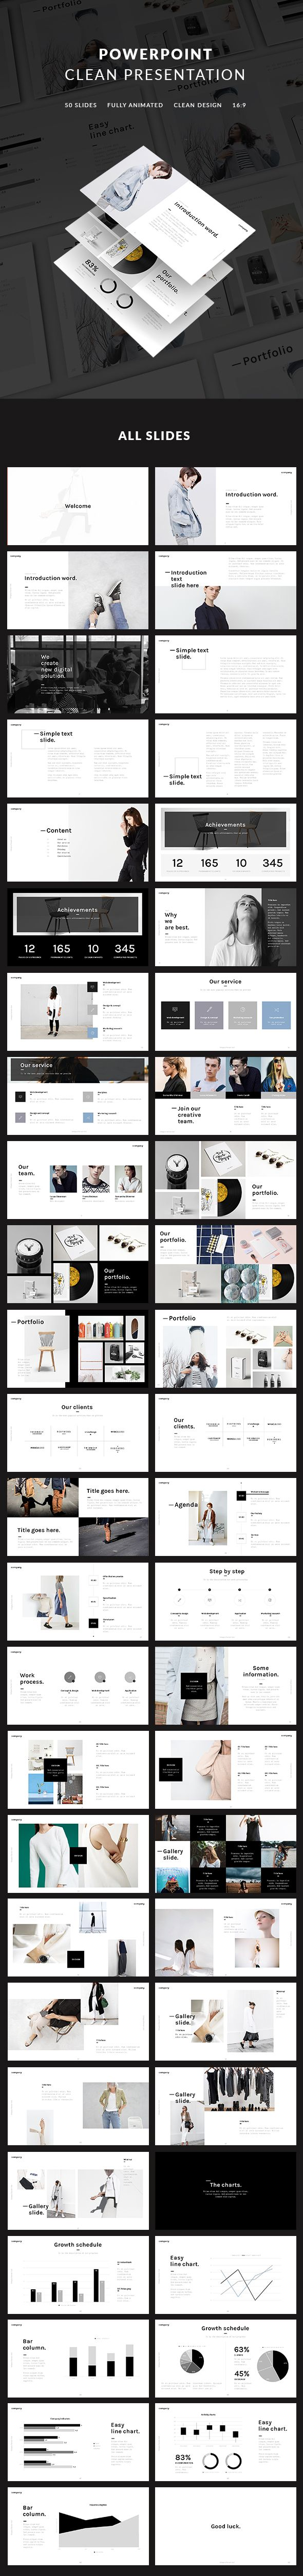 Clean PowerPoint Presentation Template. Download here: https://graphicriver.net/item/clean-presentation/17647819?ref=ksioks